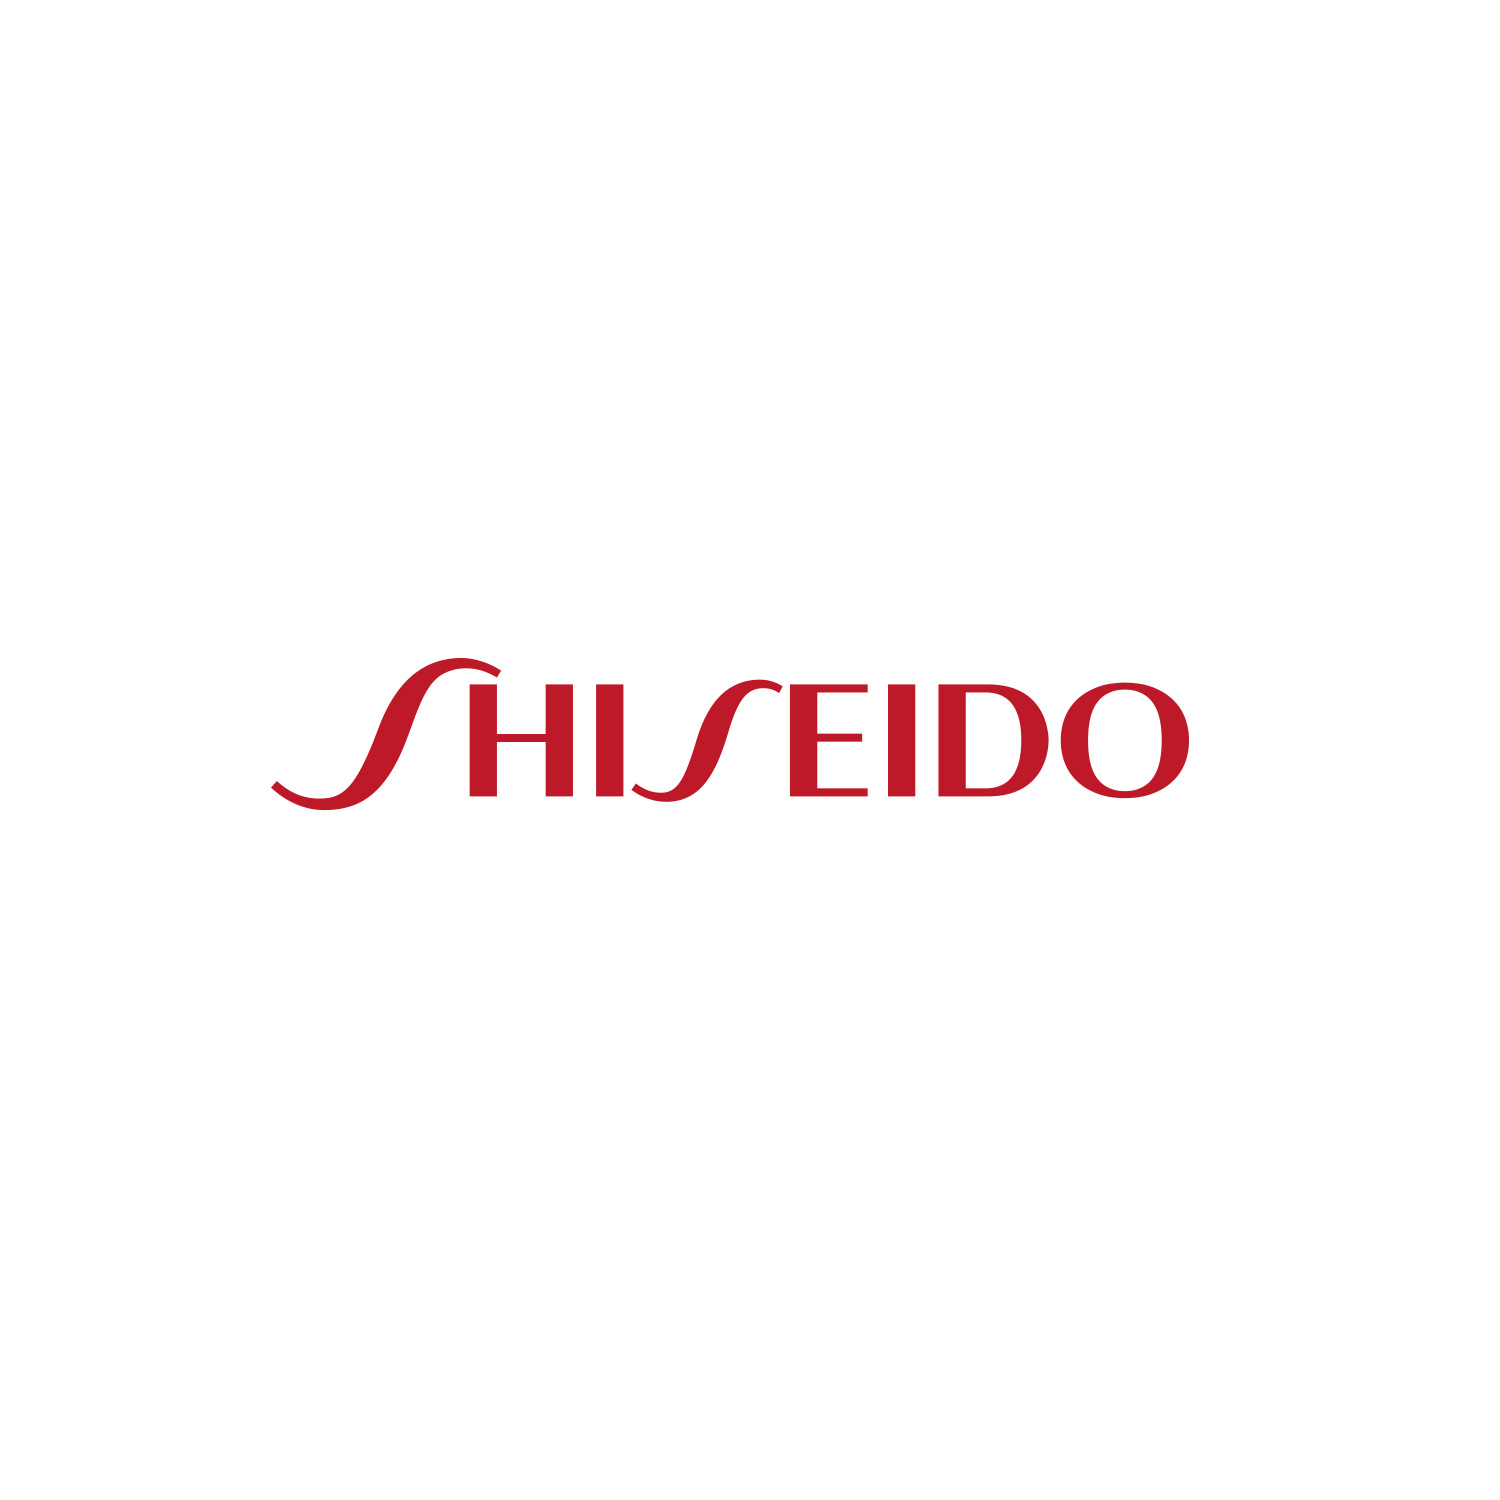 Shiseido group website